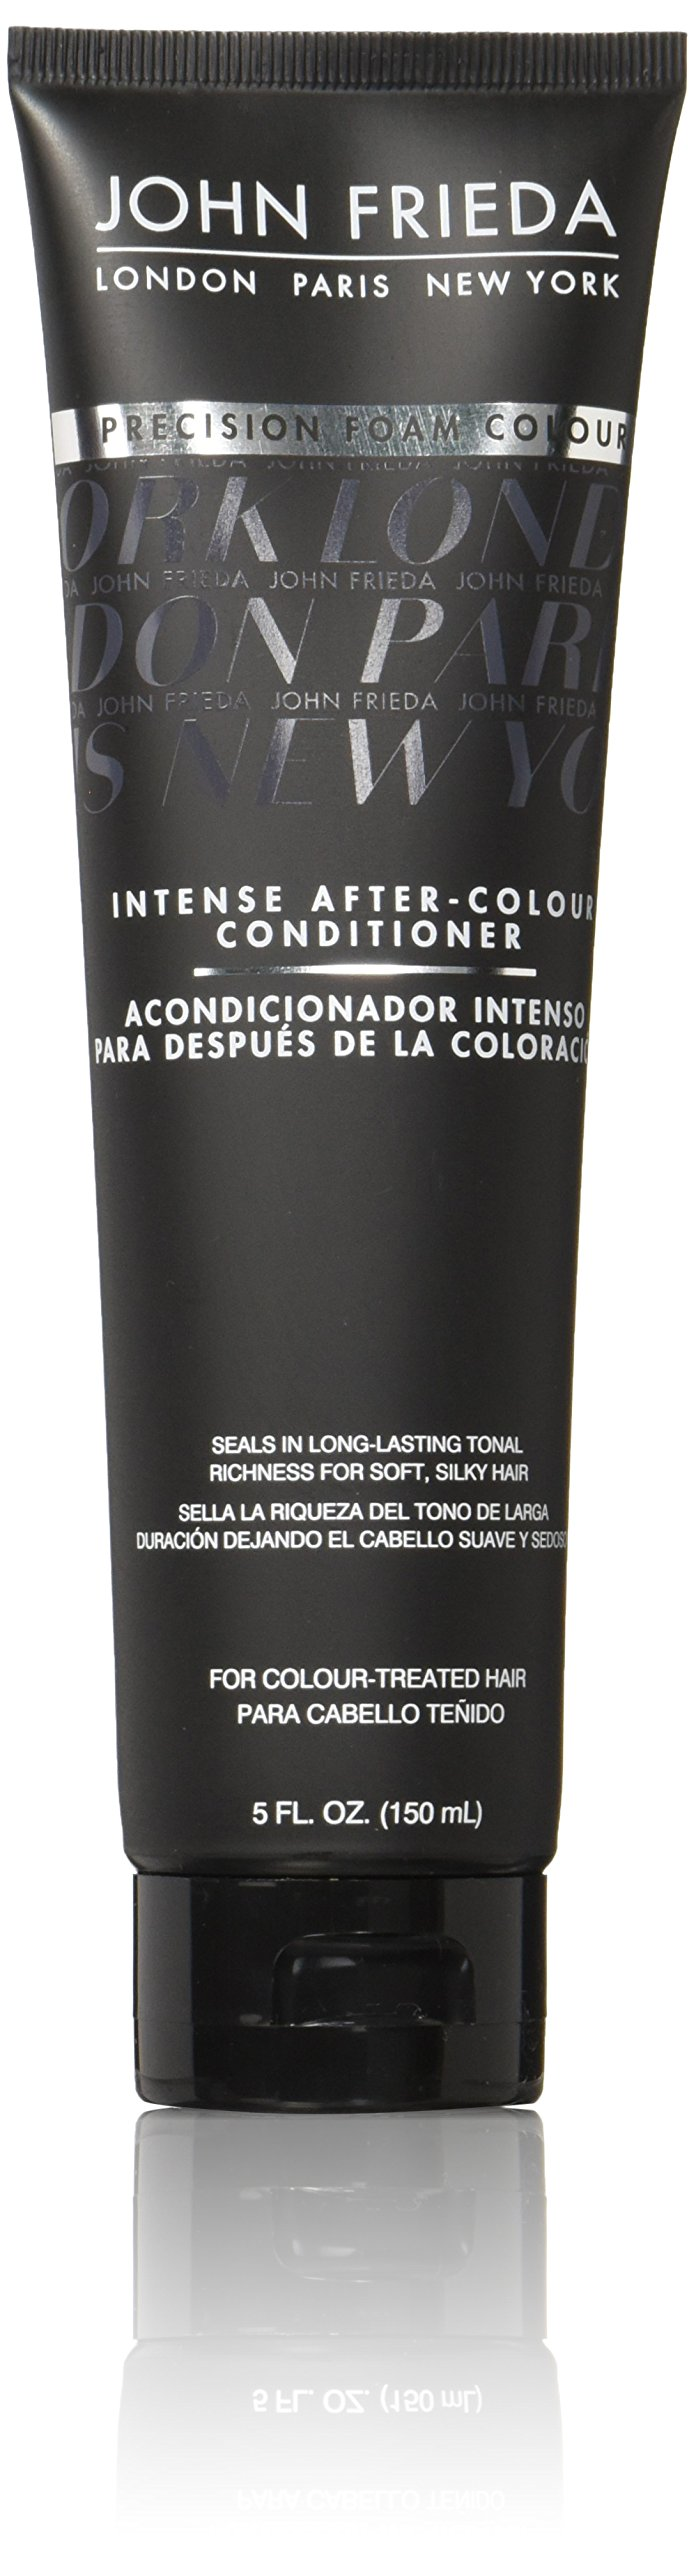 Amazon Com John Frieda Precision Foam Colour Deep Brown